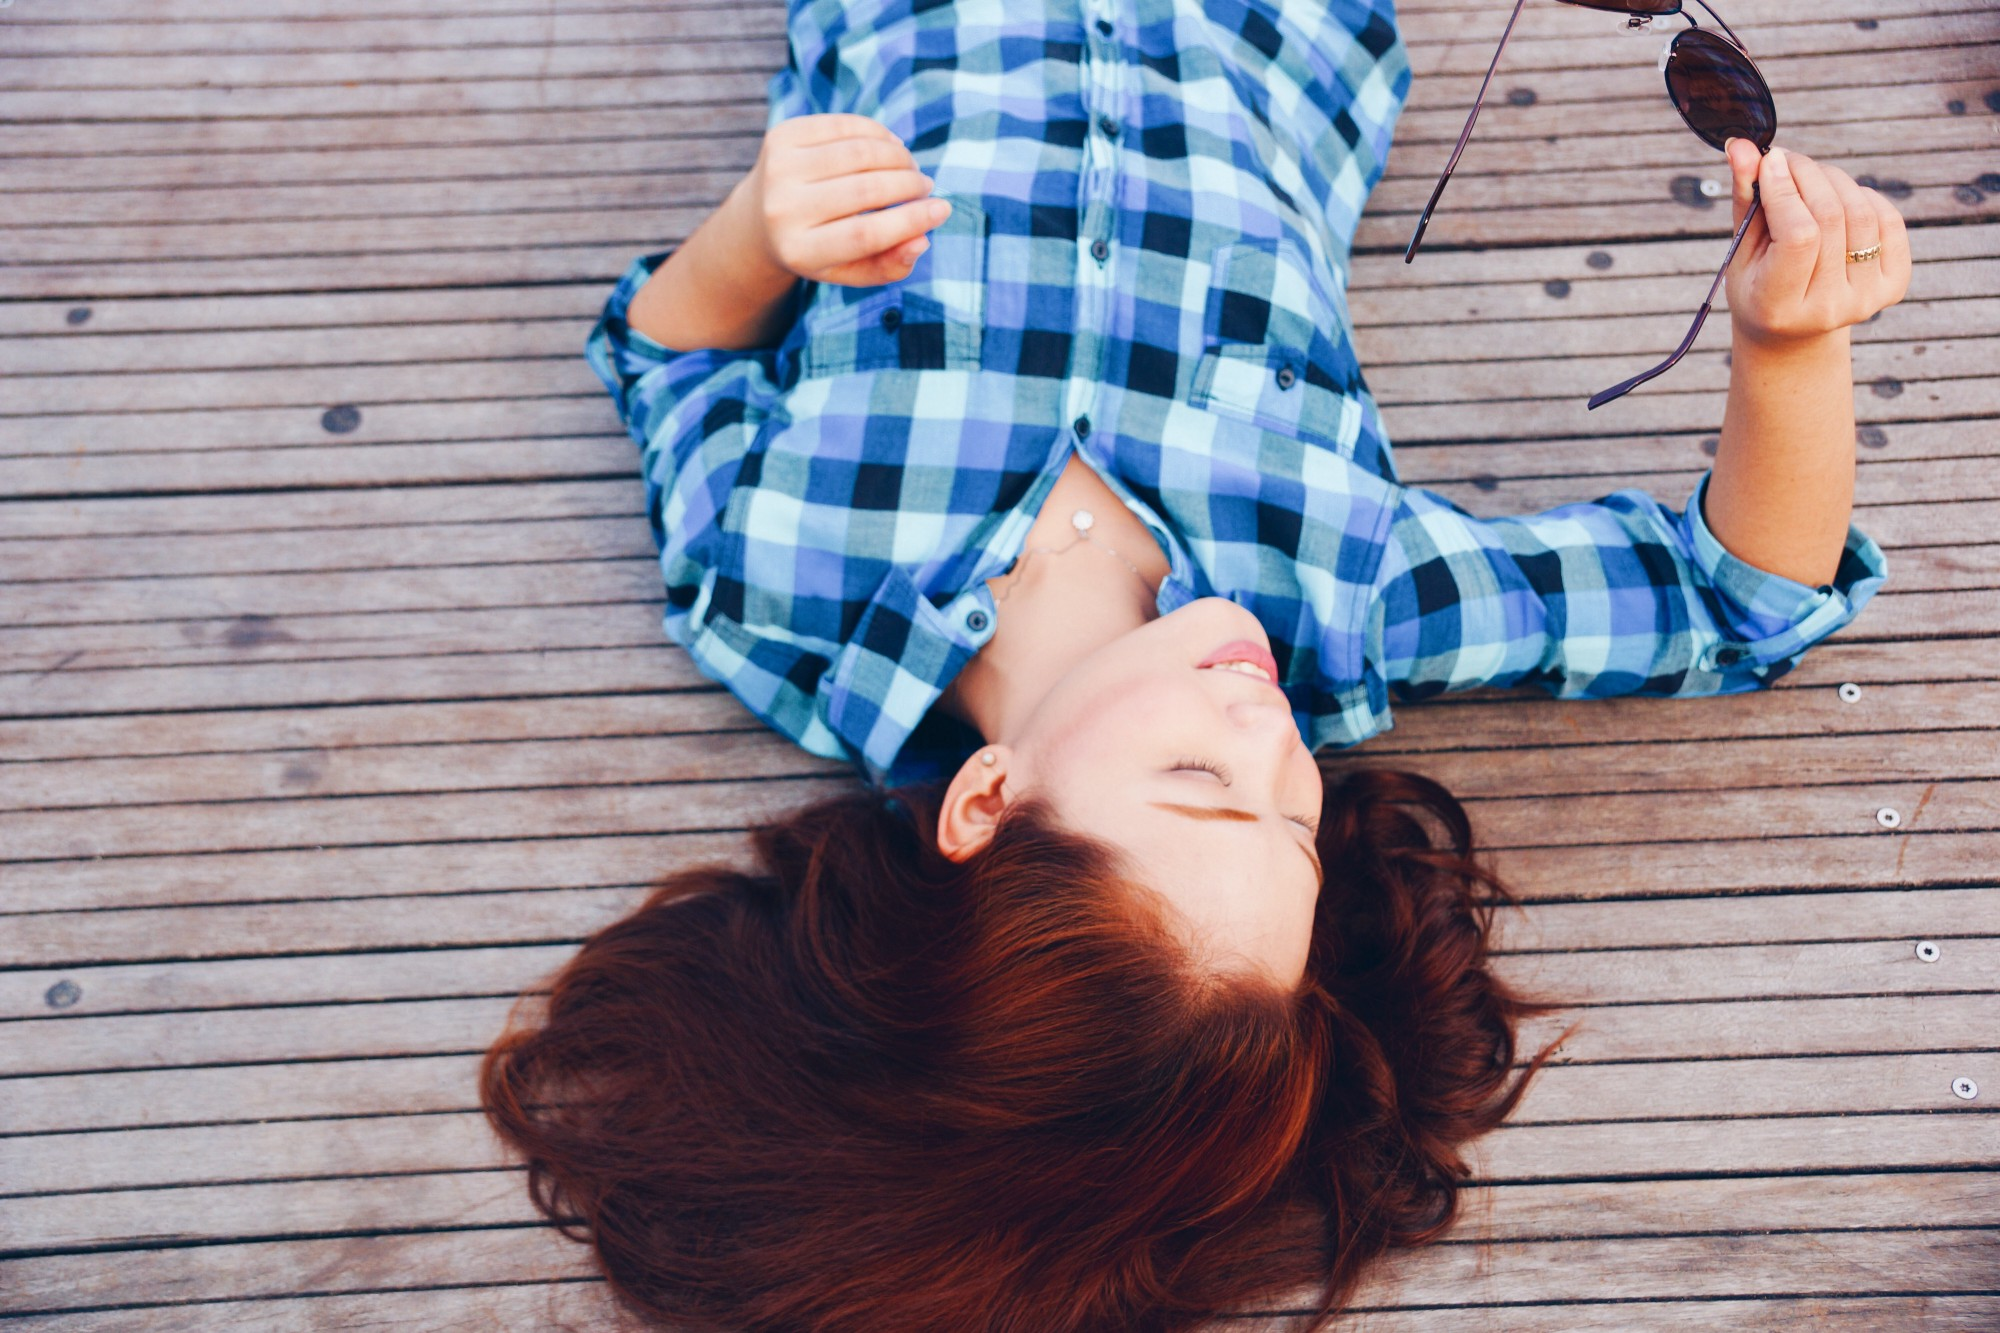 girl with long dark hair wearing blue plaid shirt holding sunglasses laying on wooden deck